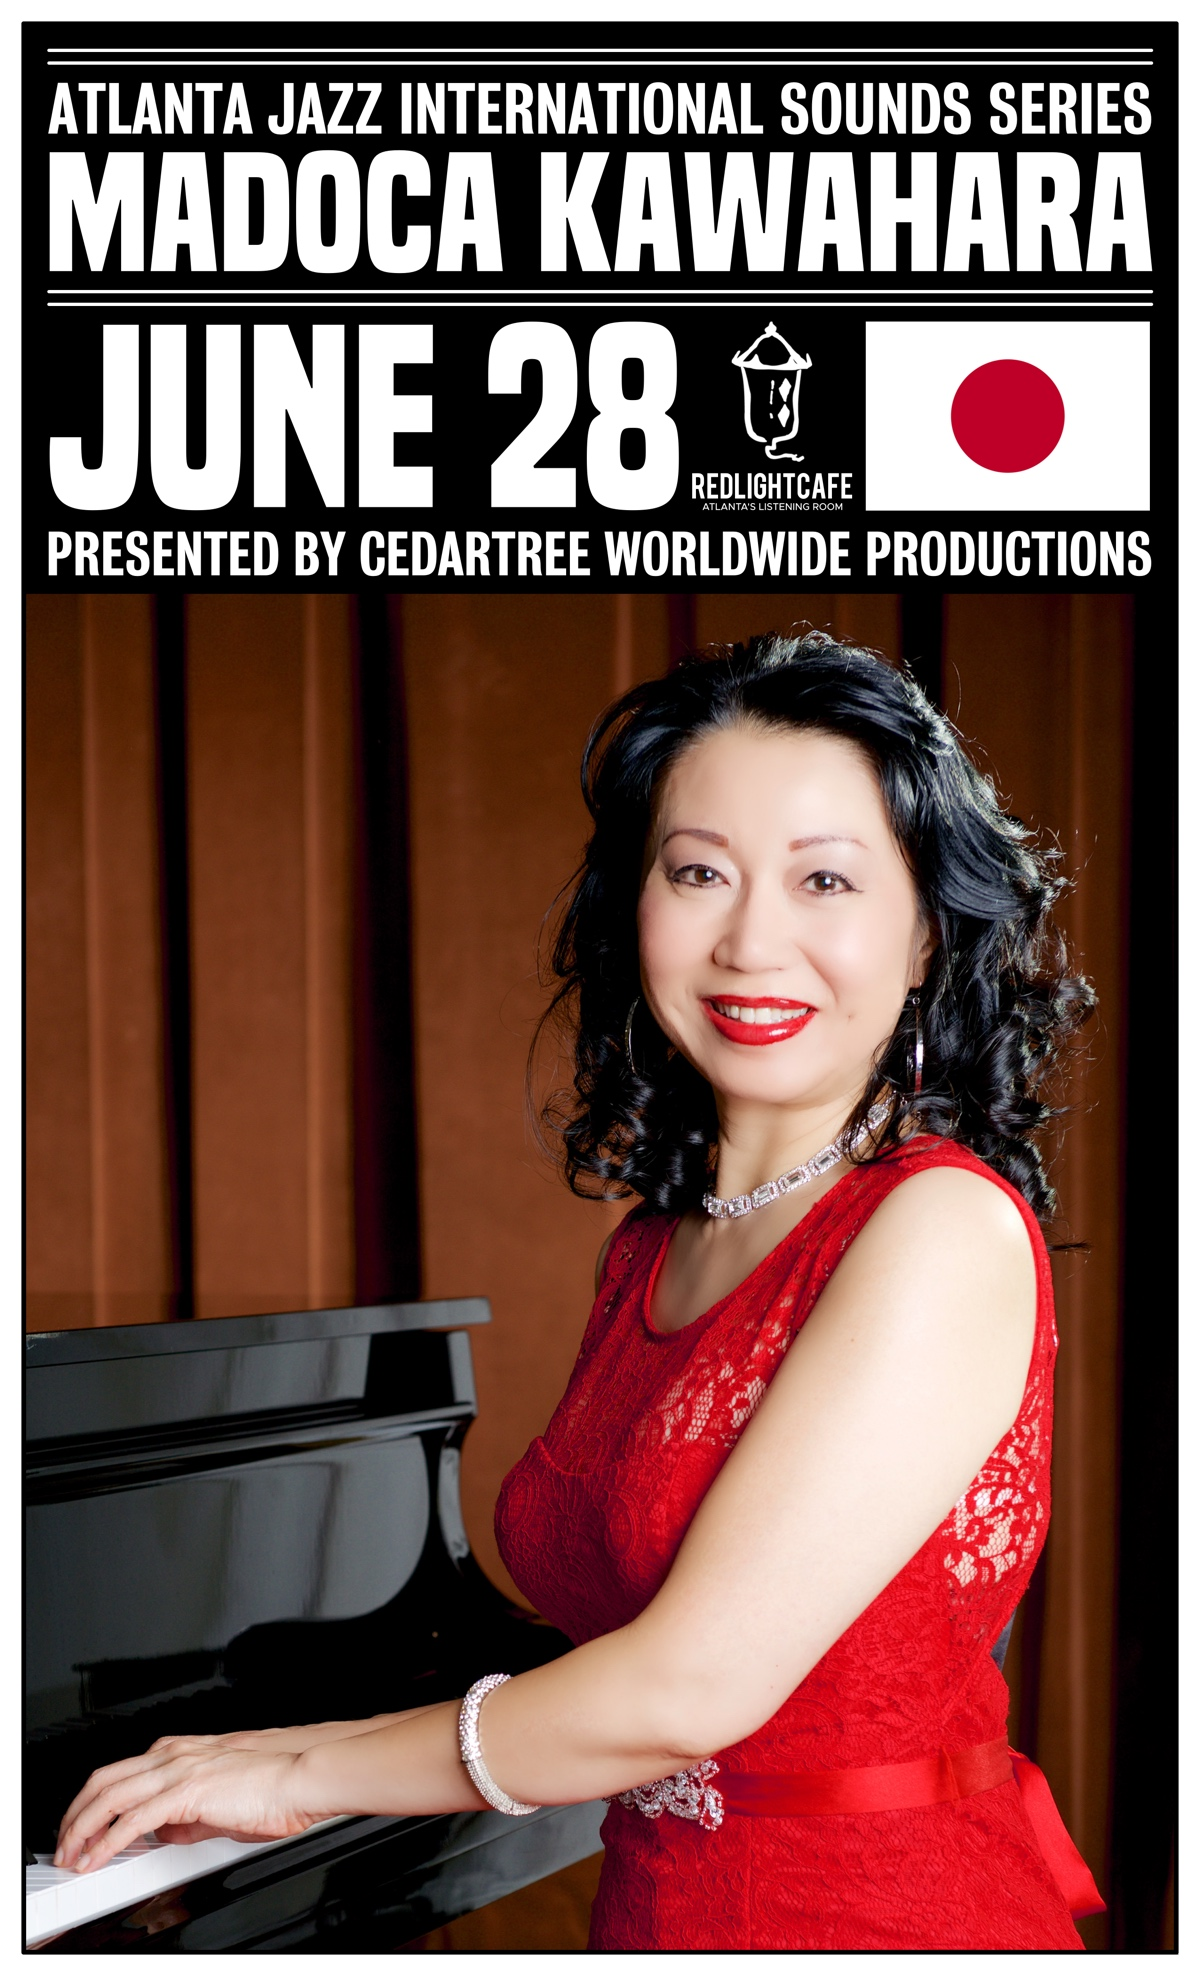 Atlanta Jazz International Sounds Series: Madoca Kawahara — June 28, 2019 — Red Light Café, Atlanta, GA